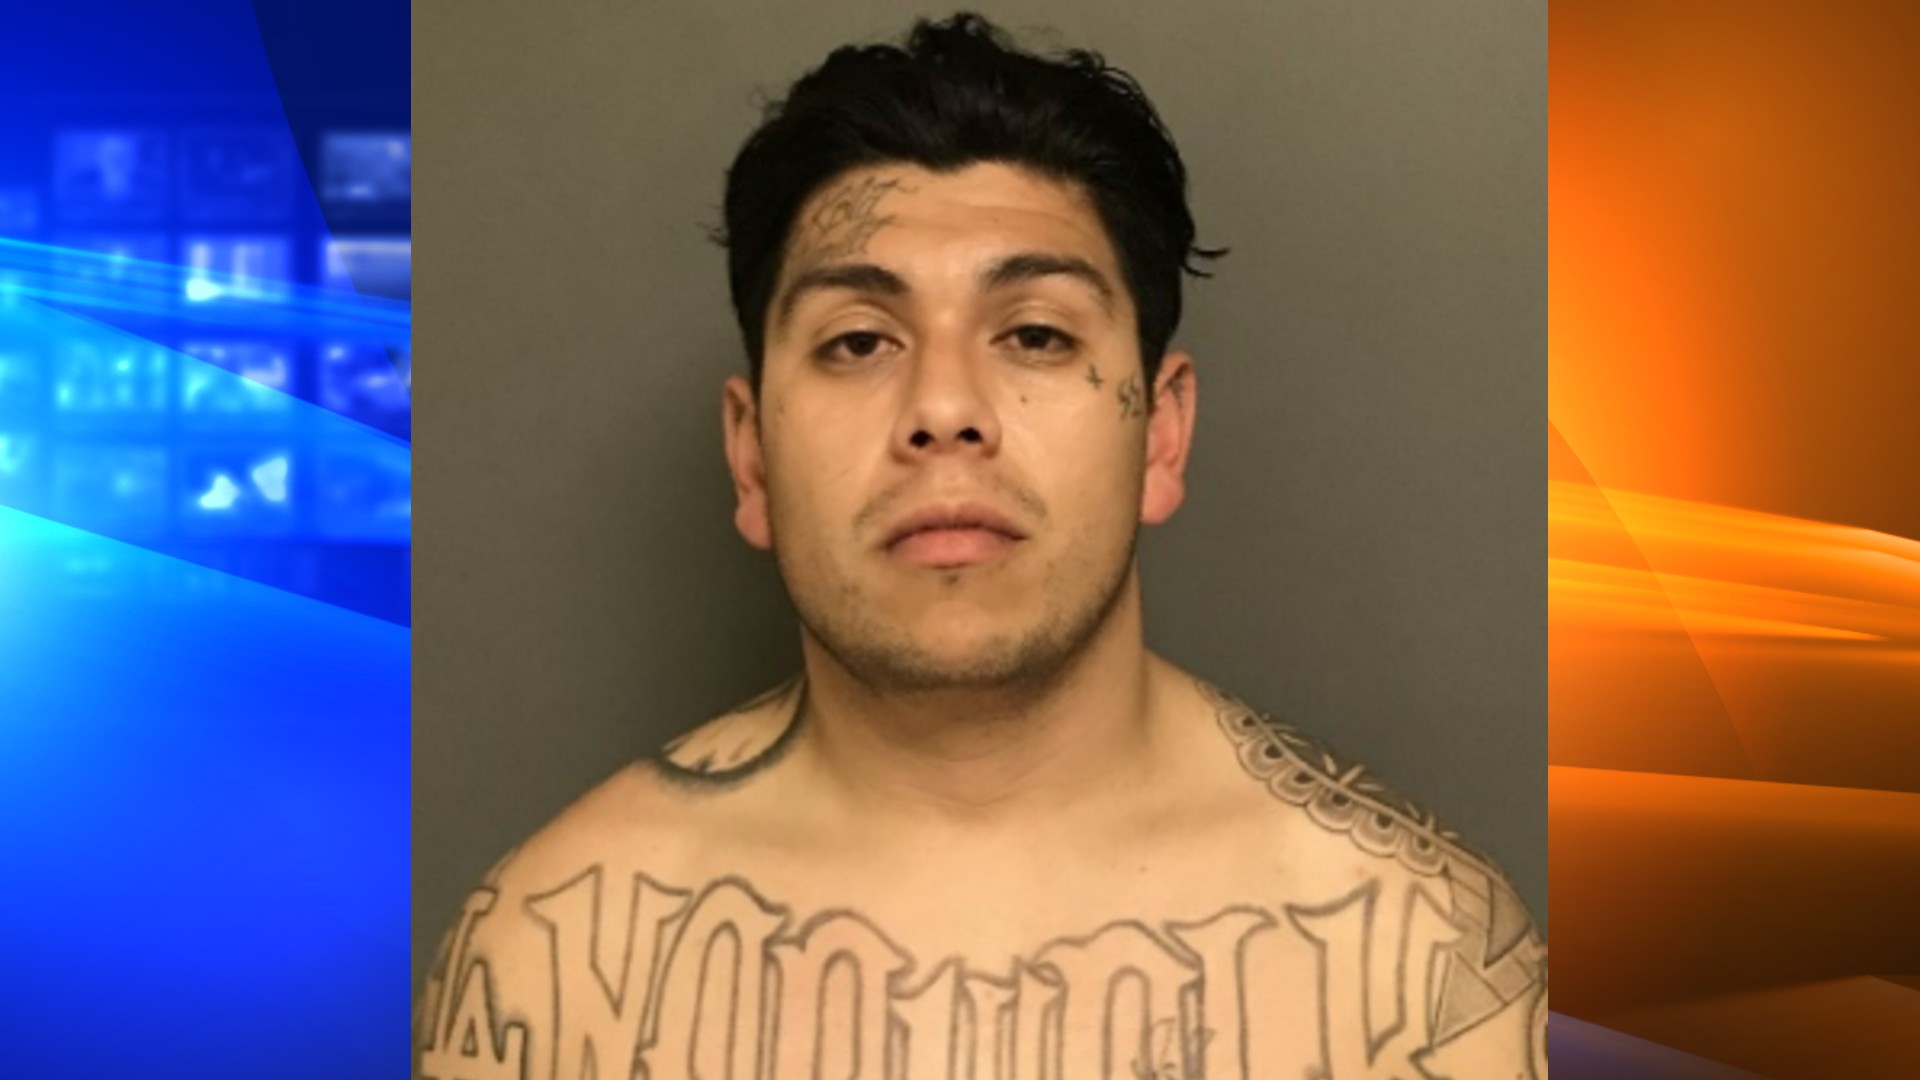 Daniel Ramirez, 28, is seen in a booking photo released by Irvine police on April 29, 2021.